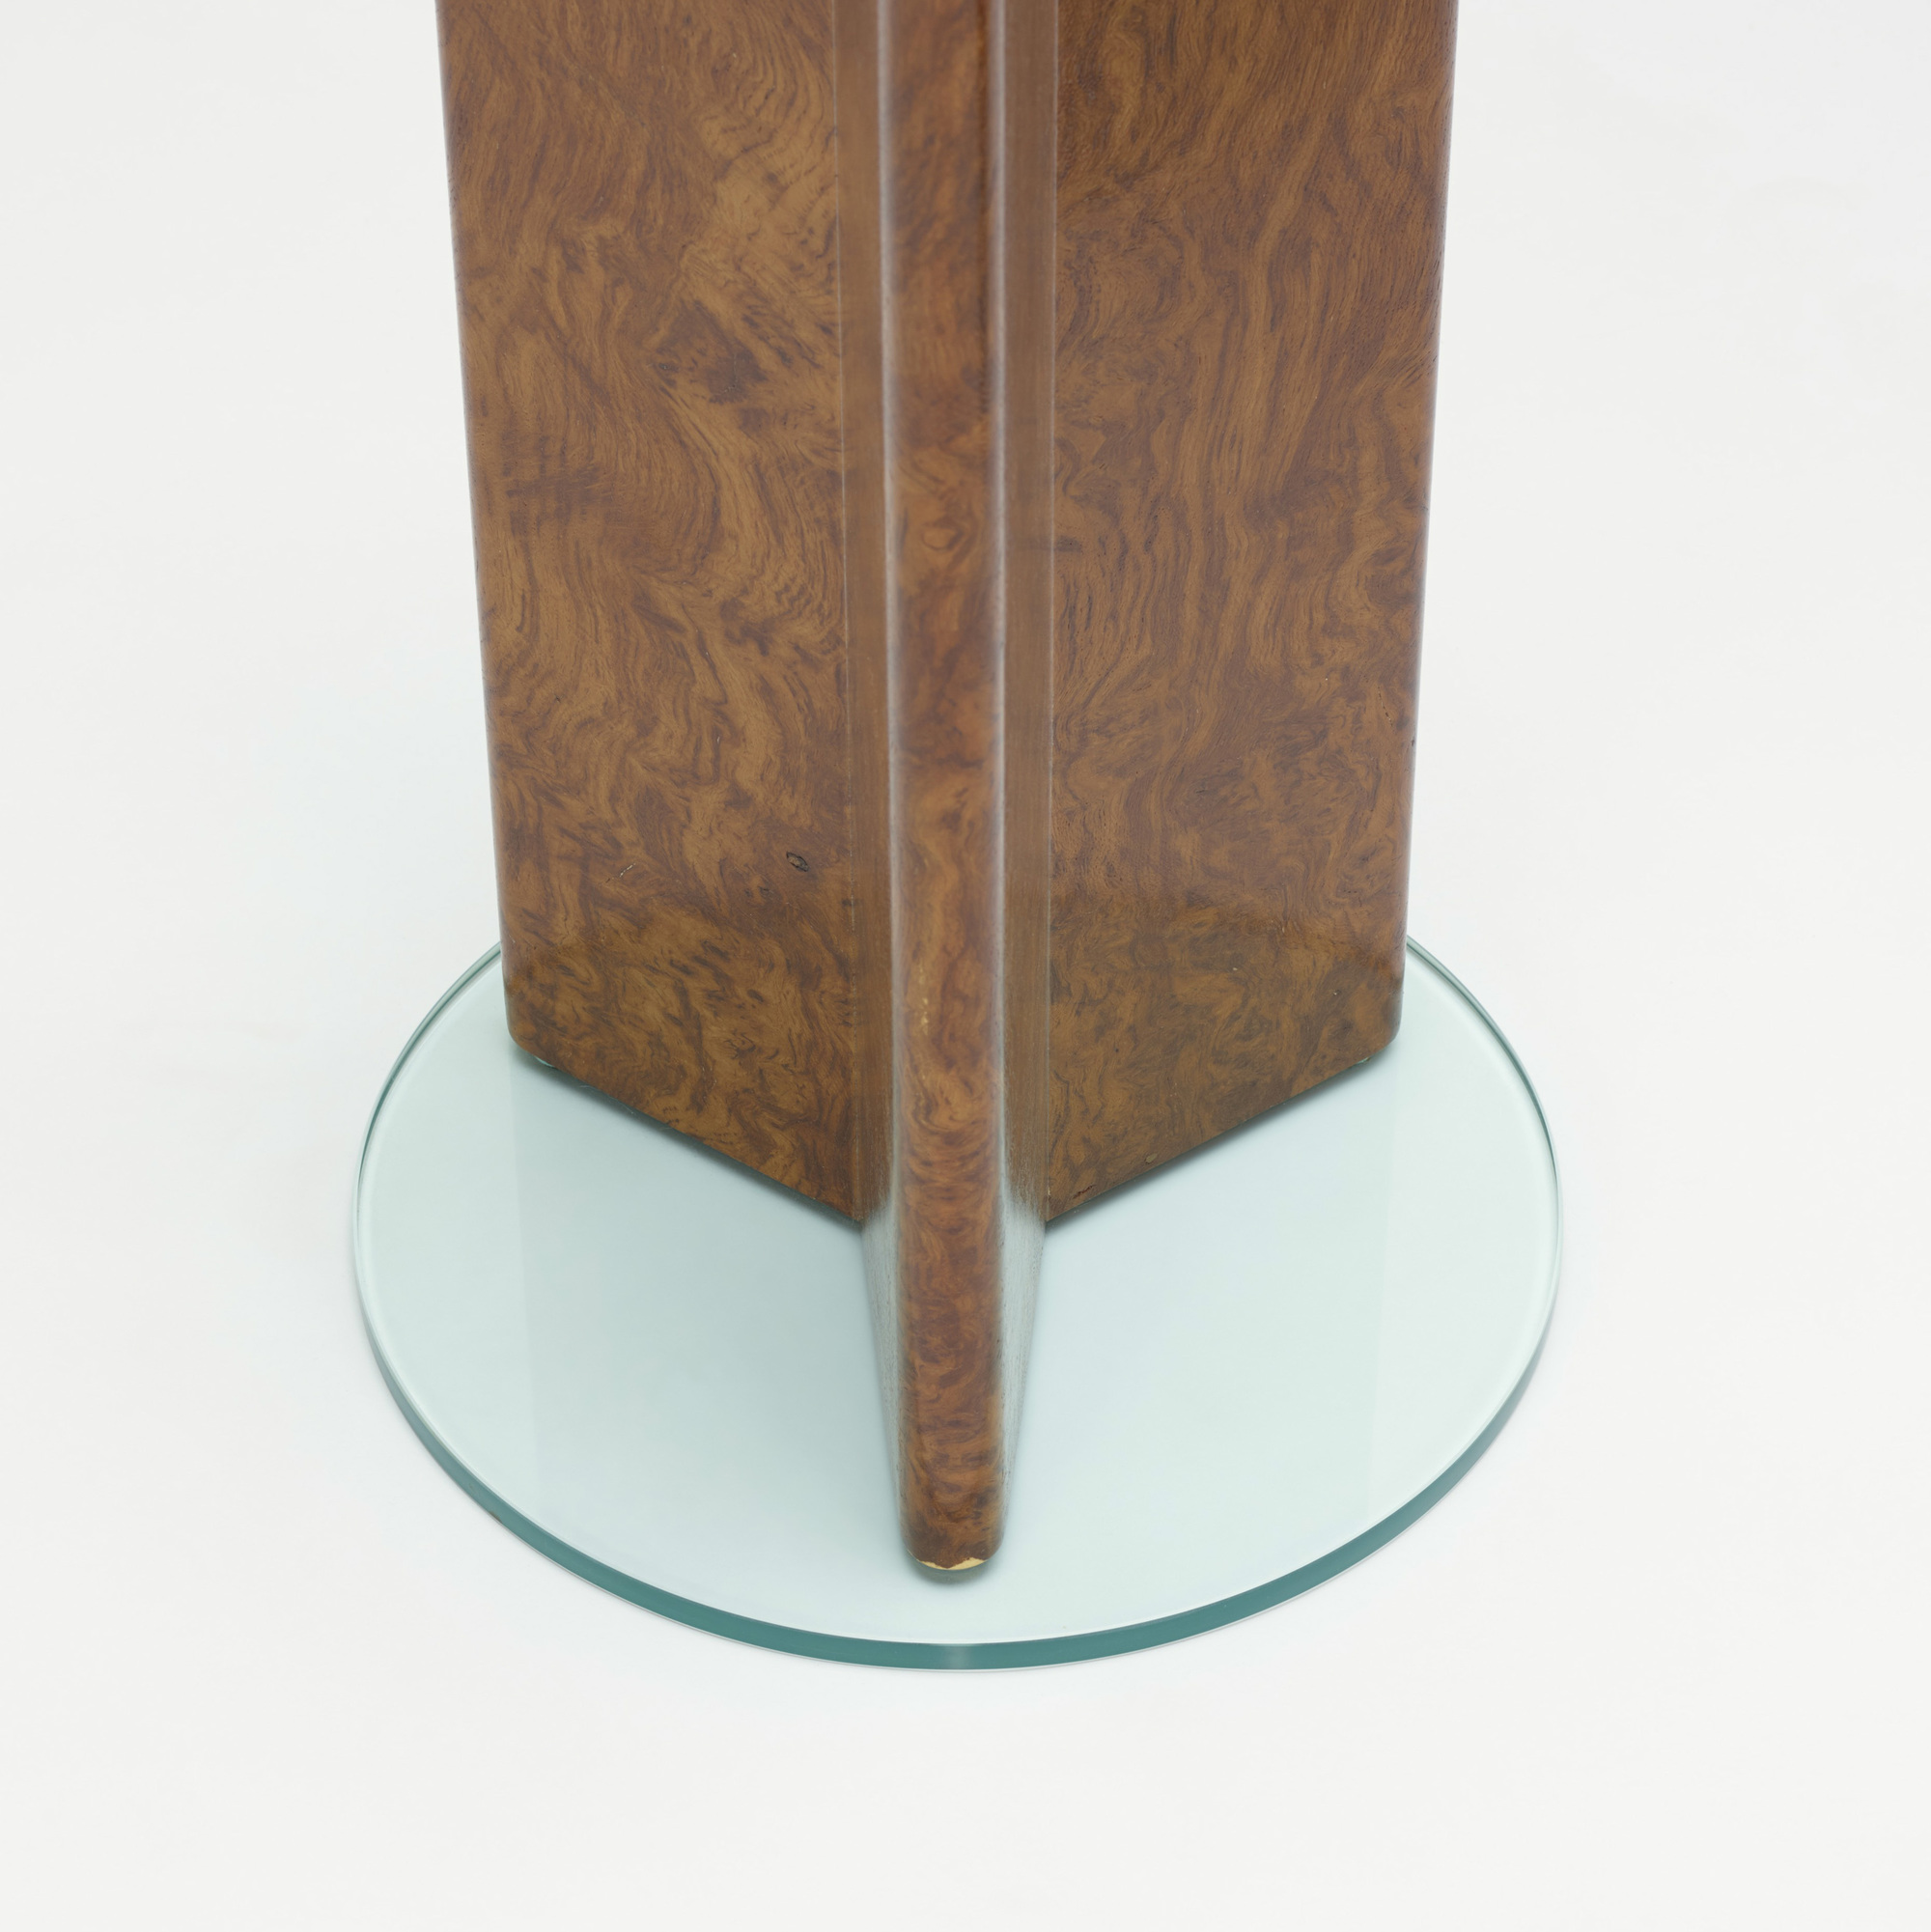 199: Samuel Marx / pair of occasional tables from the Morton D. May House (3 of 3)